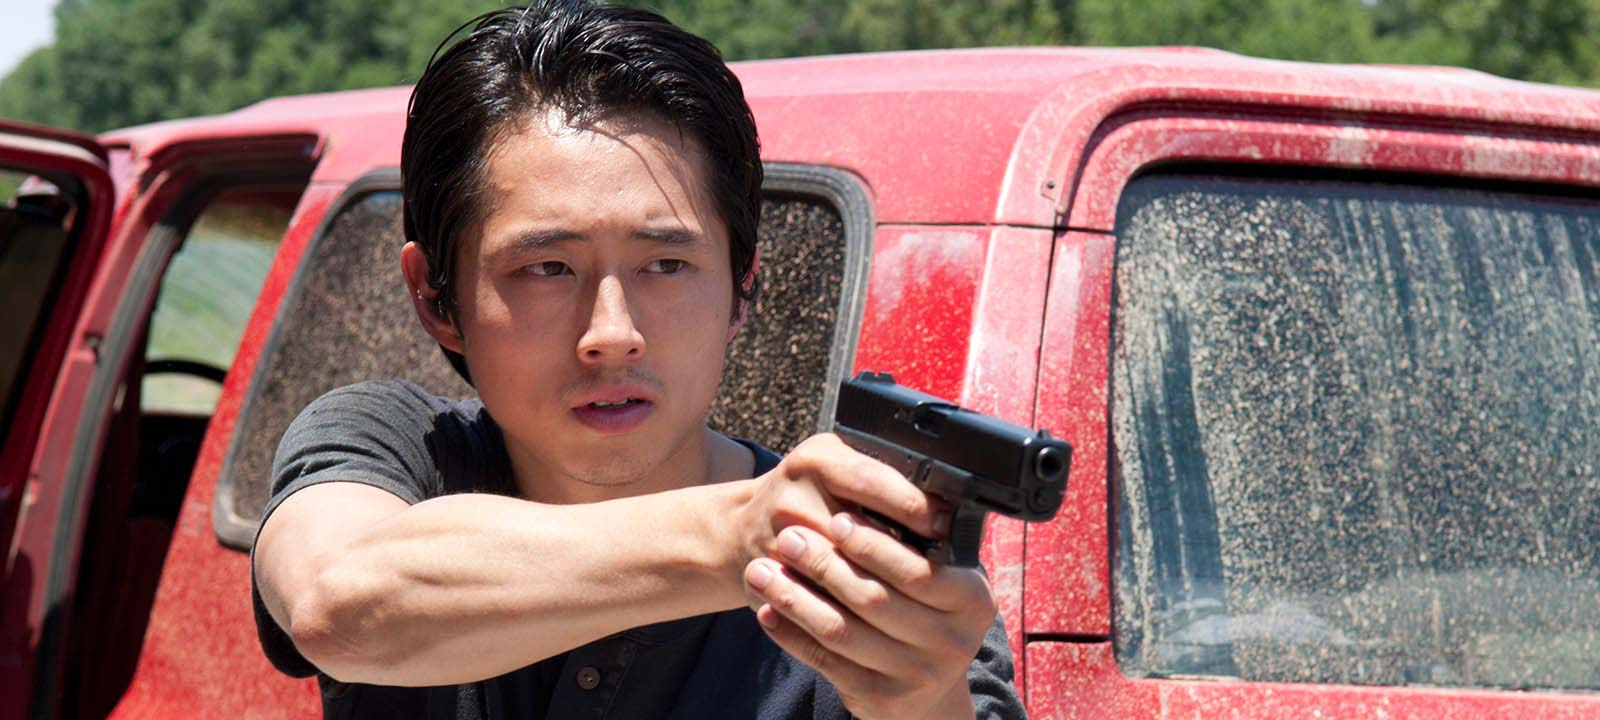 steven yeun conansteven yeun instagram, steven yeun wife, steven yeun gif, steven yeun height, steven yeun i origins, steven yeun kinopoisk, steven yeun haircut, steven yeun conan, steven yeun 2017, steven yeun lauren cohan, steven yeun wedding, steven yeun voltron, steven yeun 2016, steven yeun age, steven yeun gif tumblr, steven yeun youtube, steven yeun shelter, steven yeun gif hunt, steven yeun funny moments, steven yeun worth